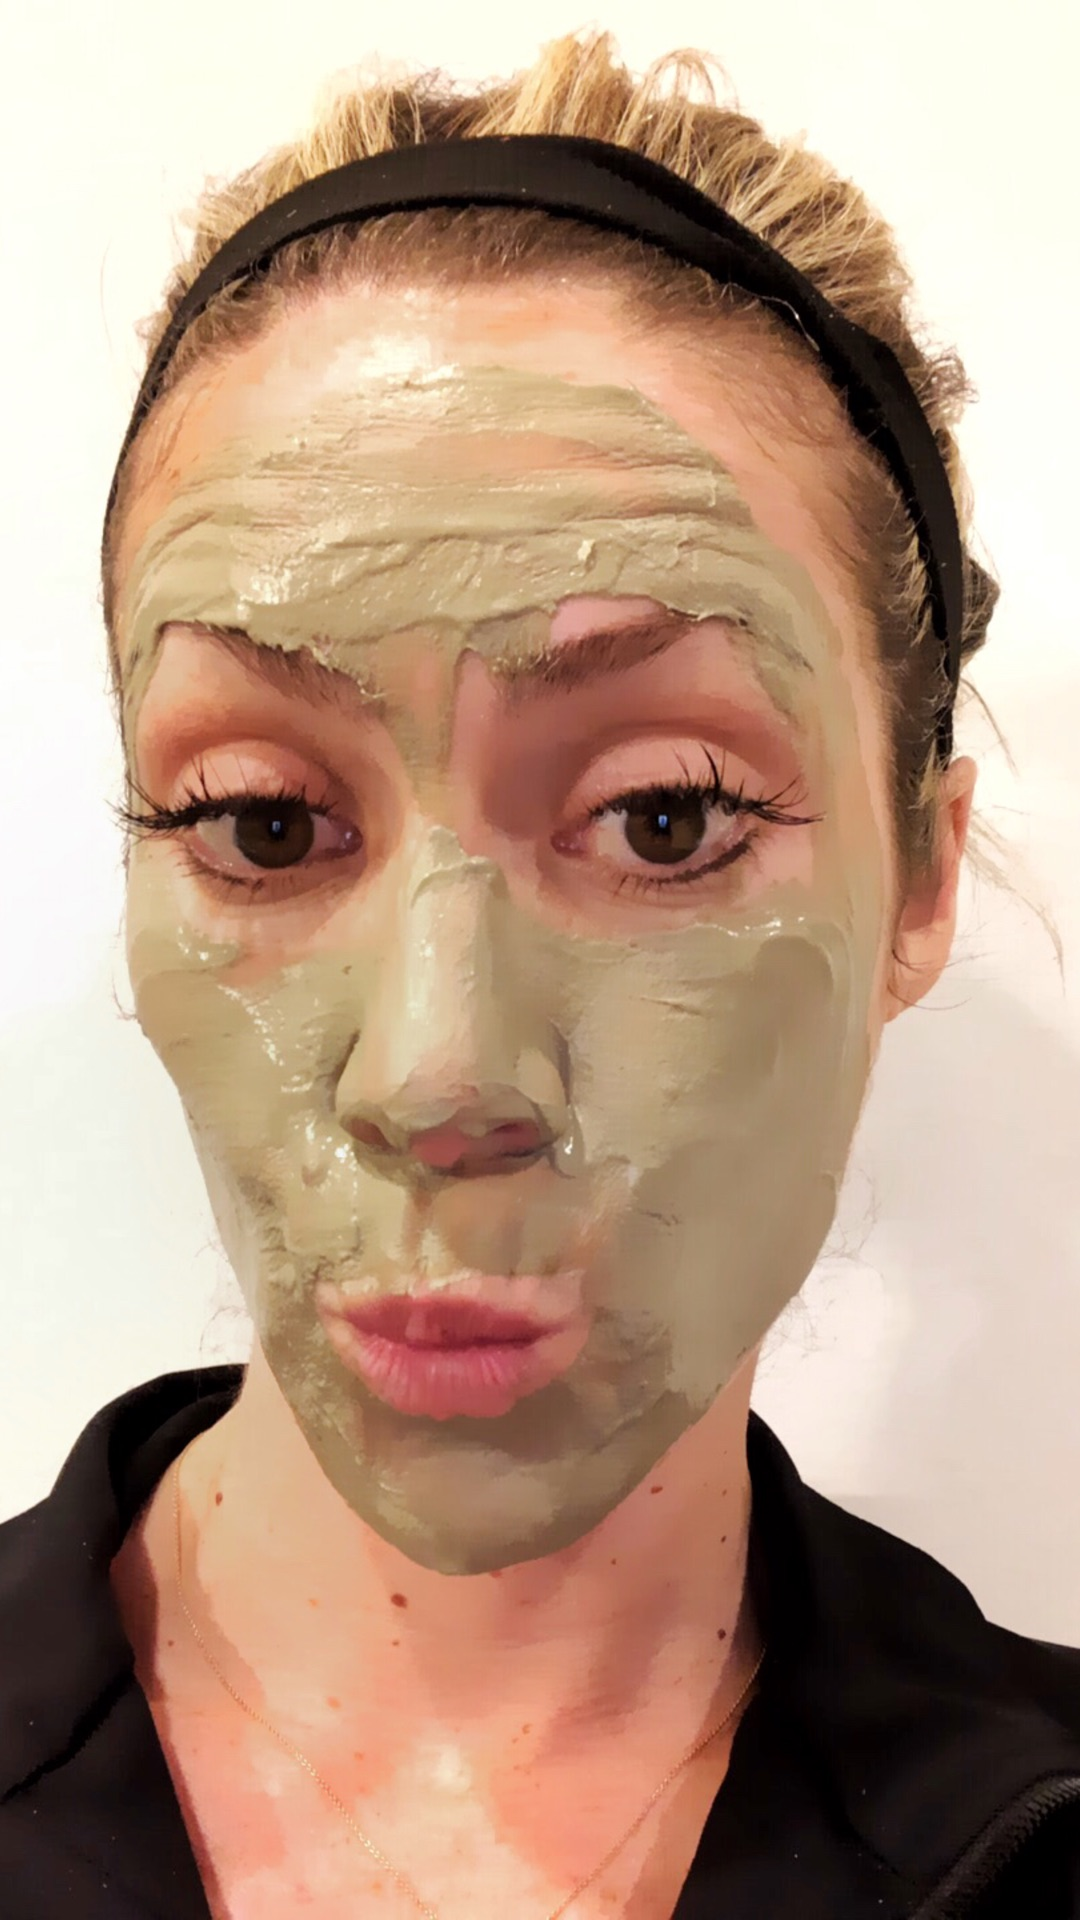 the DL: - Here you can see the mask is still wet on my forehead and right cheek but starting to dry on my left cheek. When it turns chalky is a good time to wash it off.